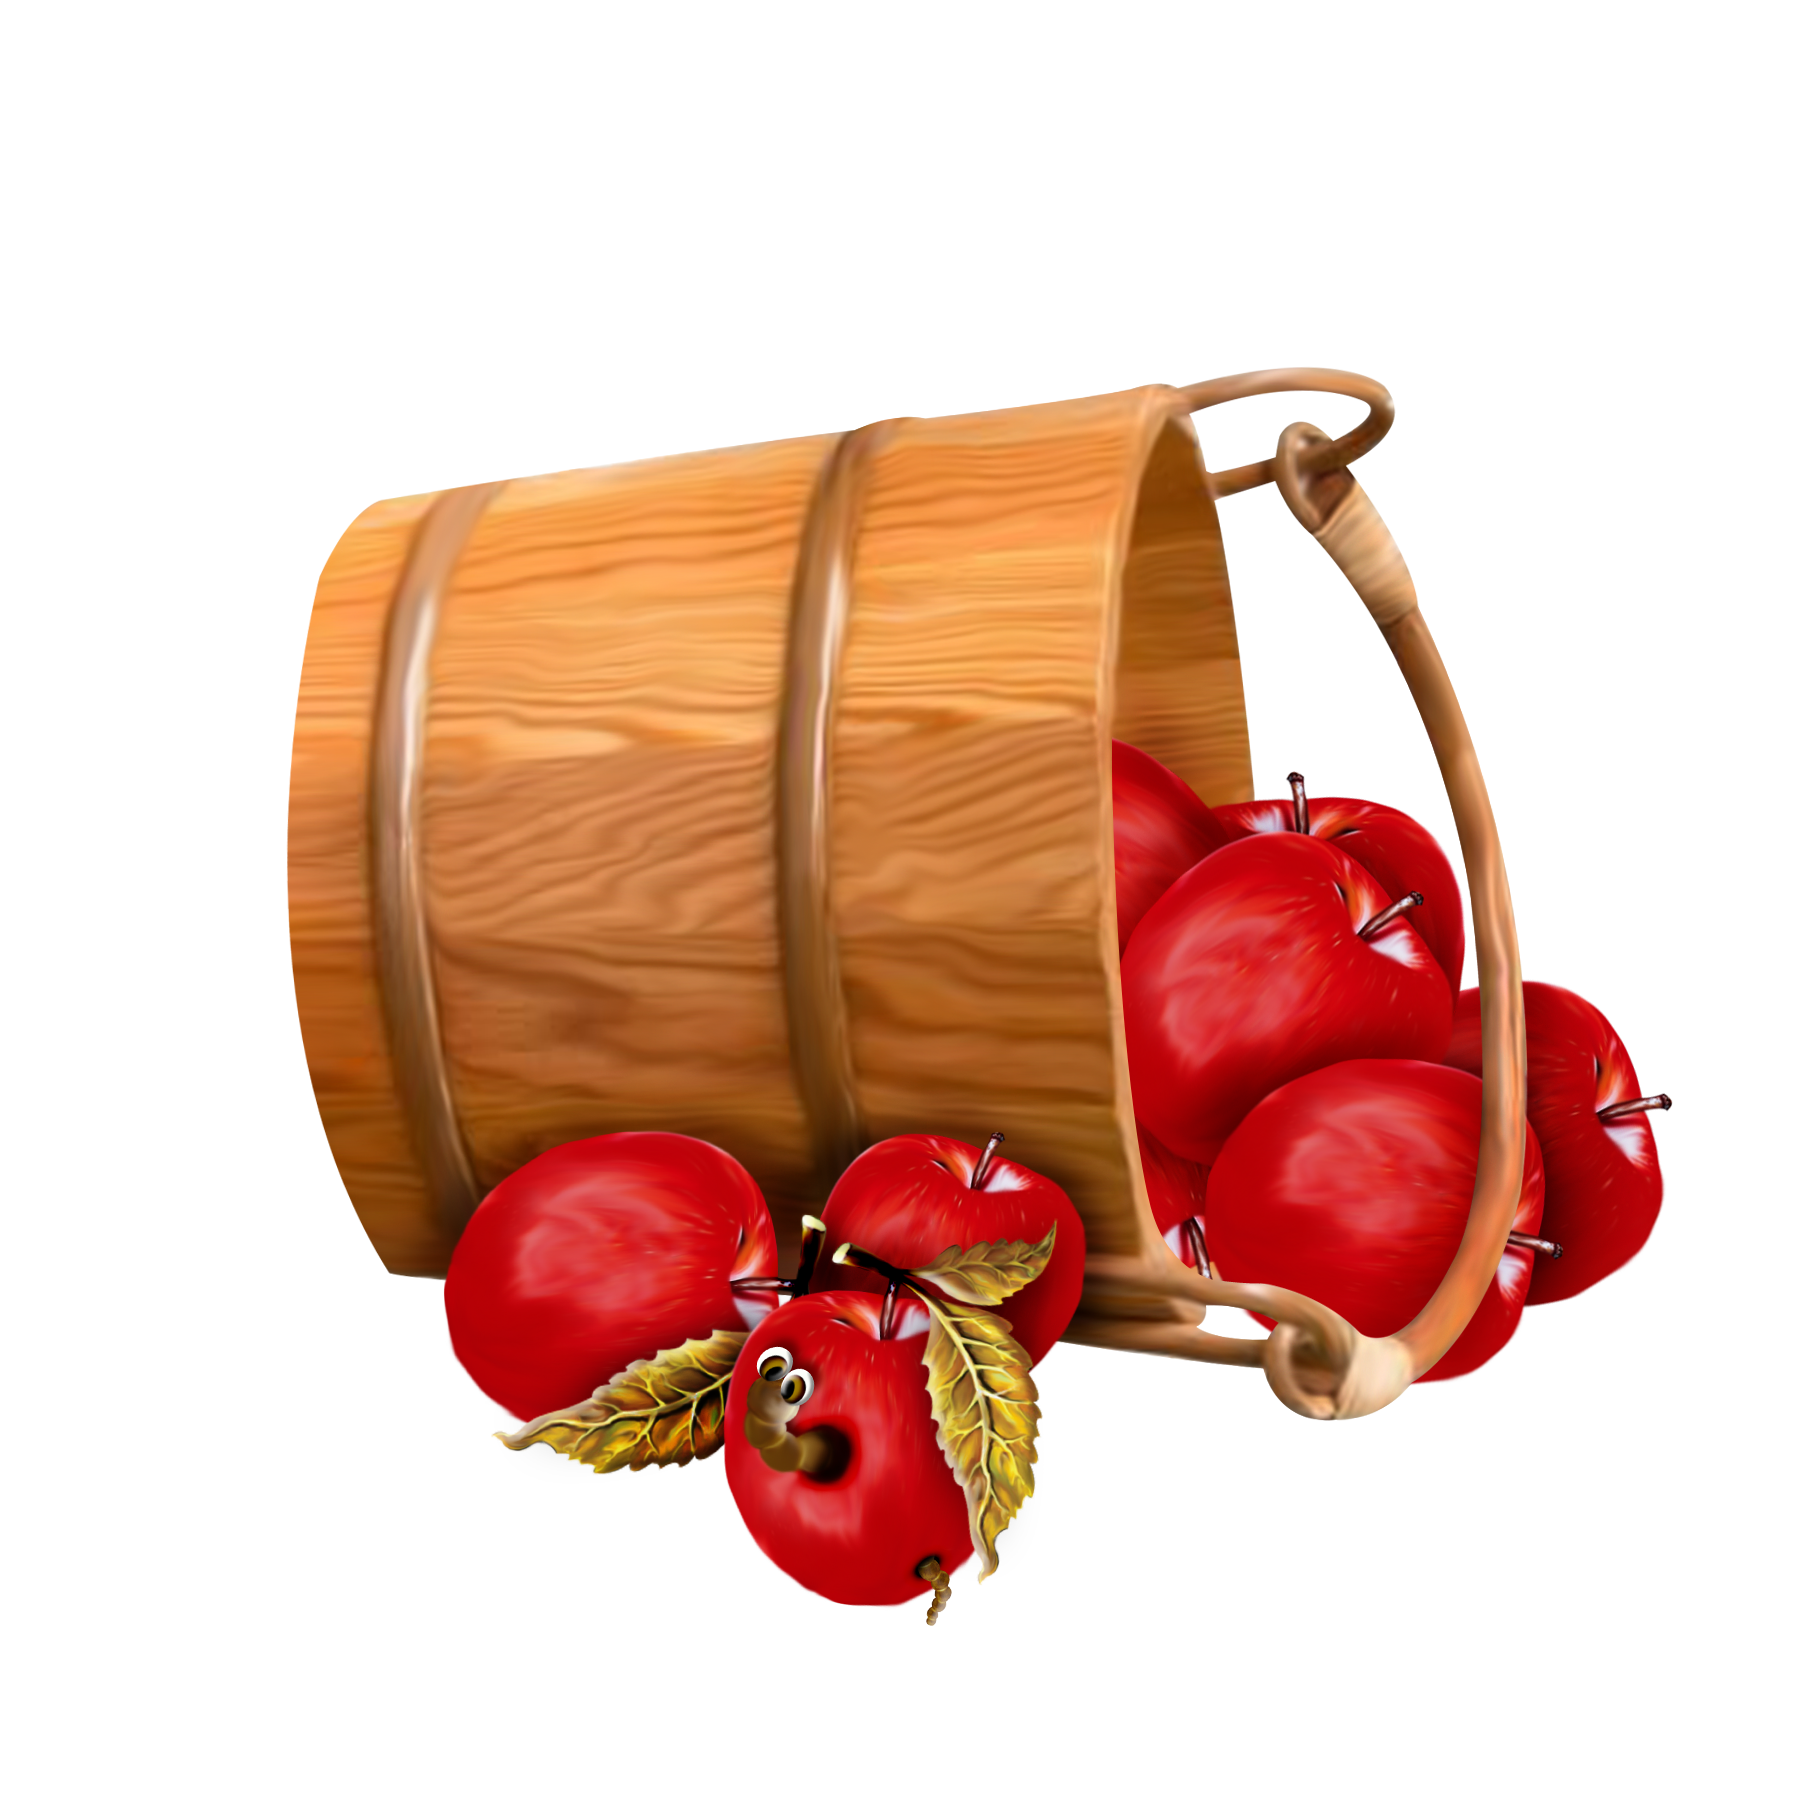 Fruits clipart bucket. With apples transparent applecart